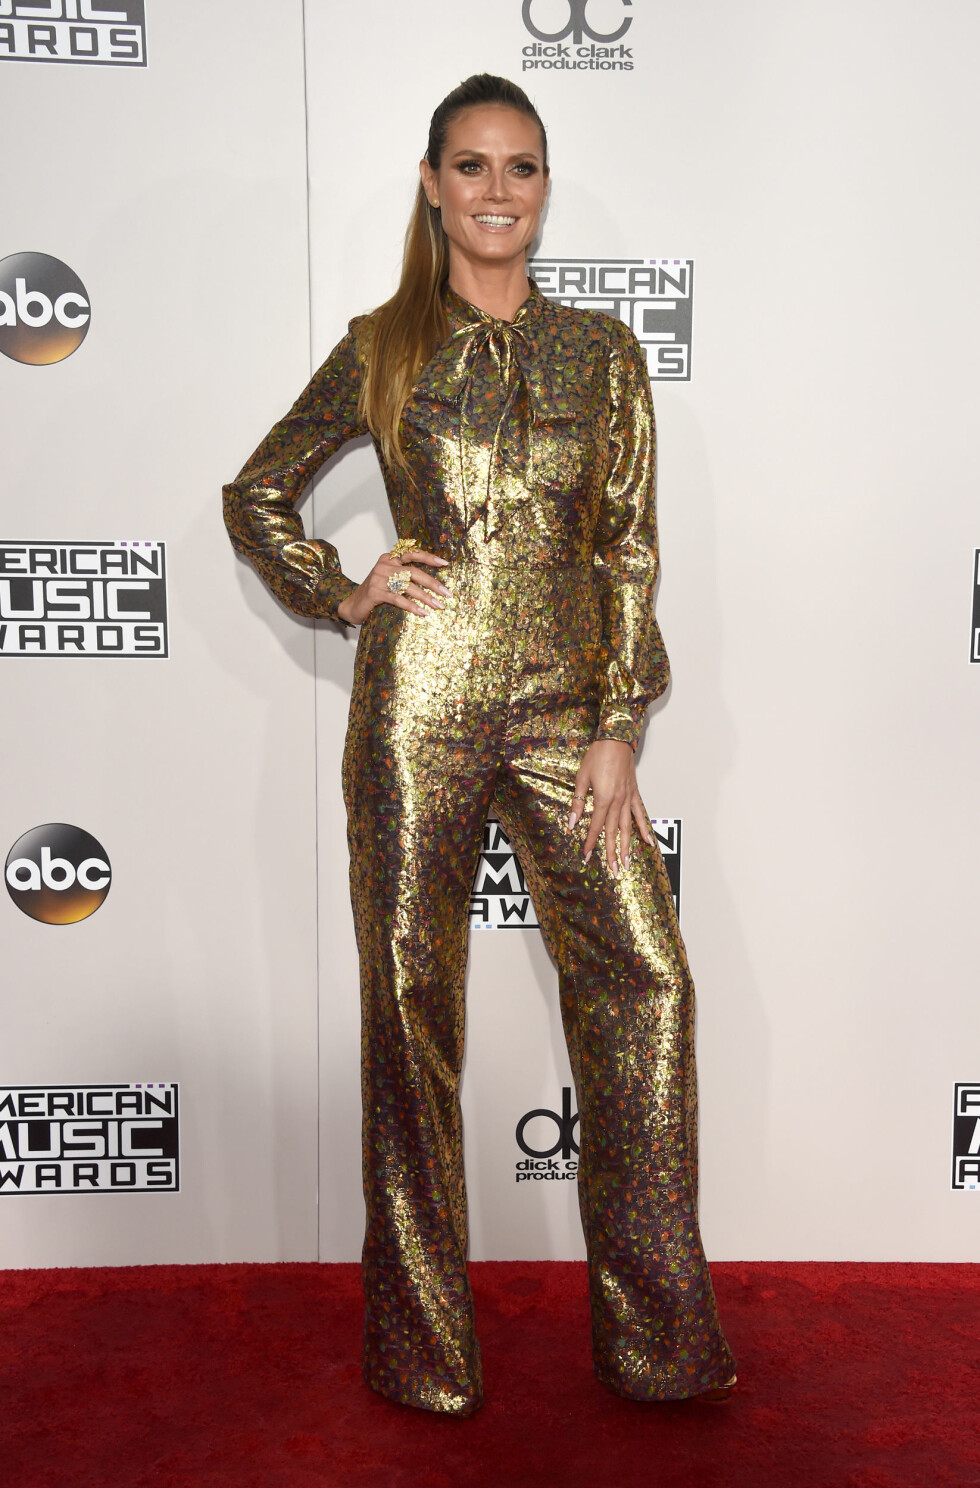 AMERICAN MUSIC AWARDS: Heidi Klum Foto: Pa Photos